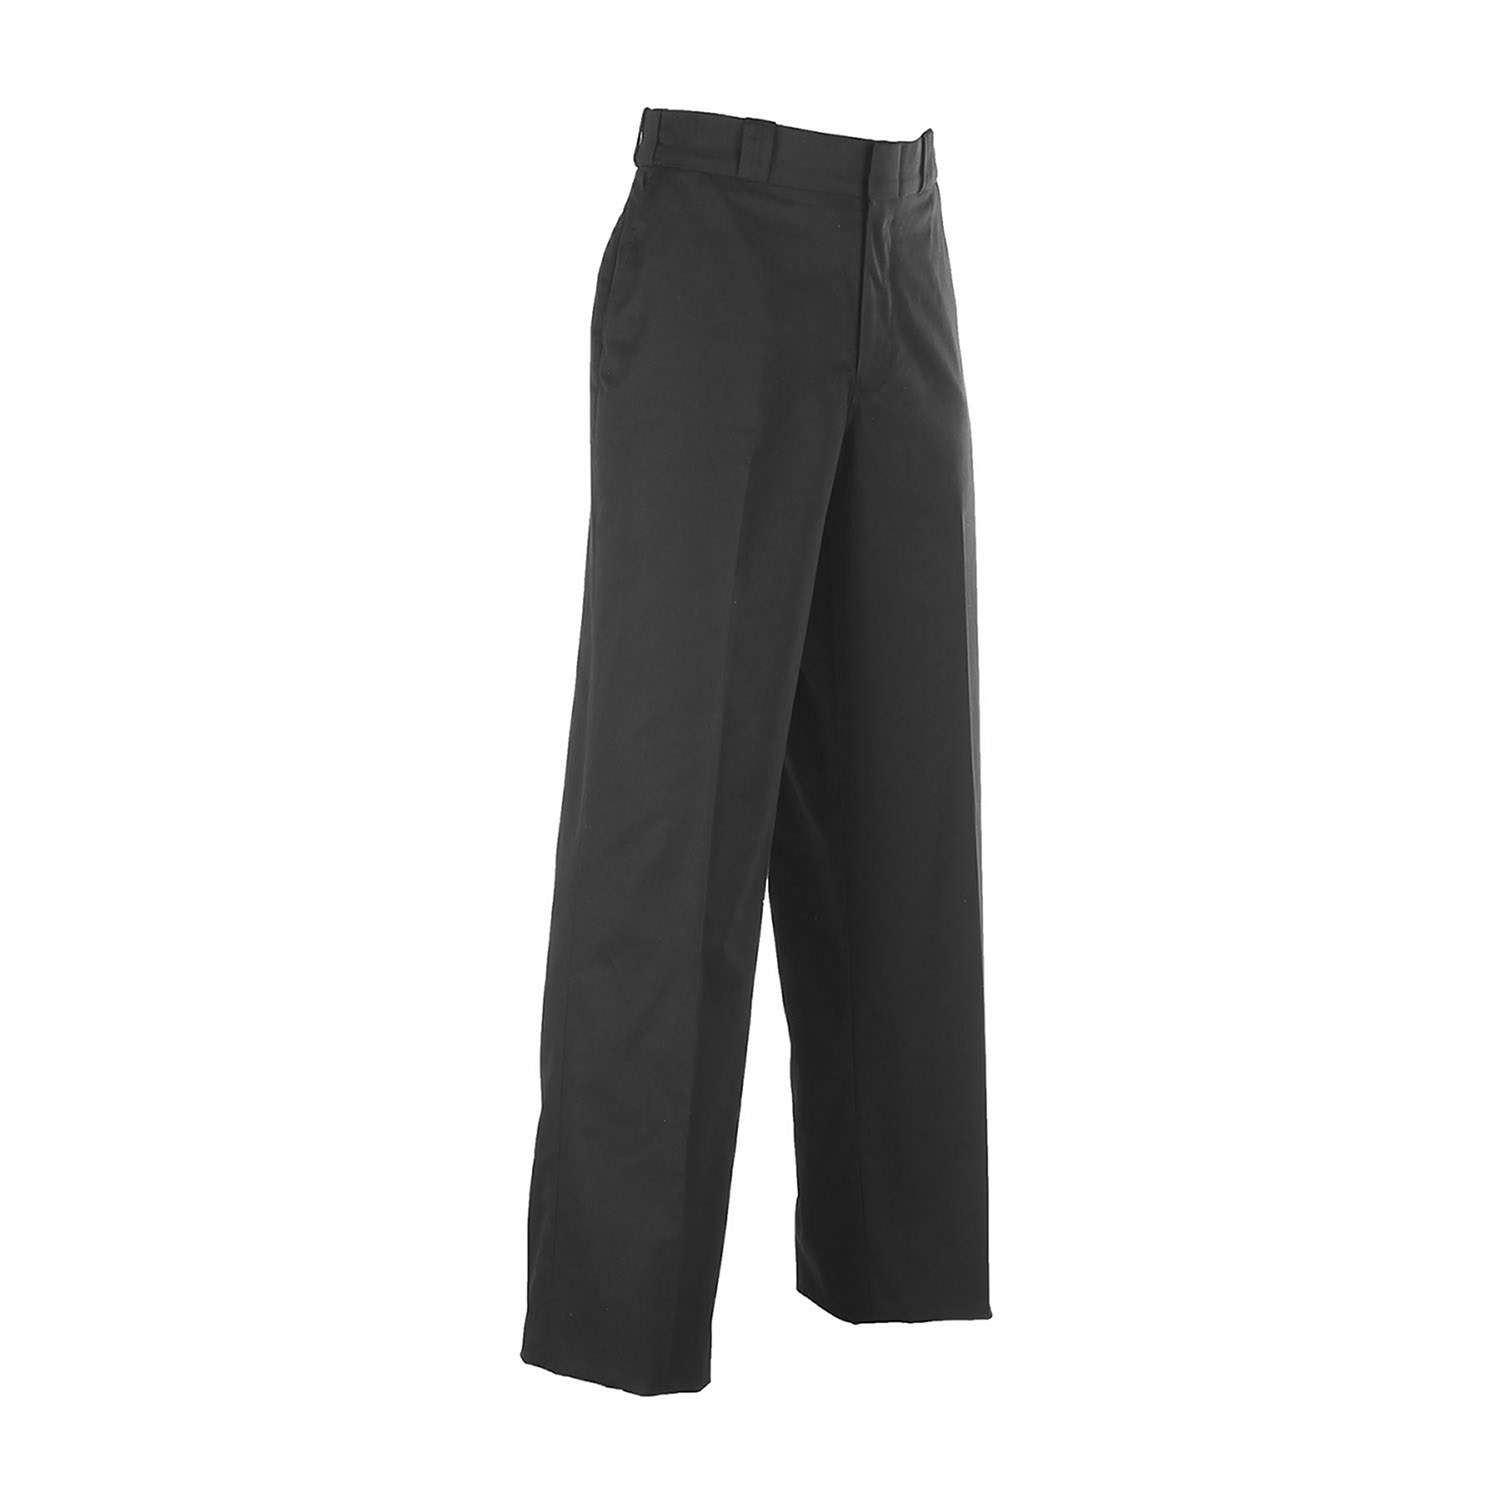 Elbeco Men's TEK3 4 Pocket Trousers